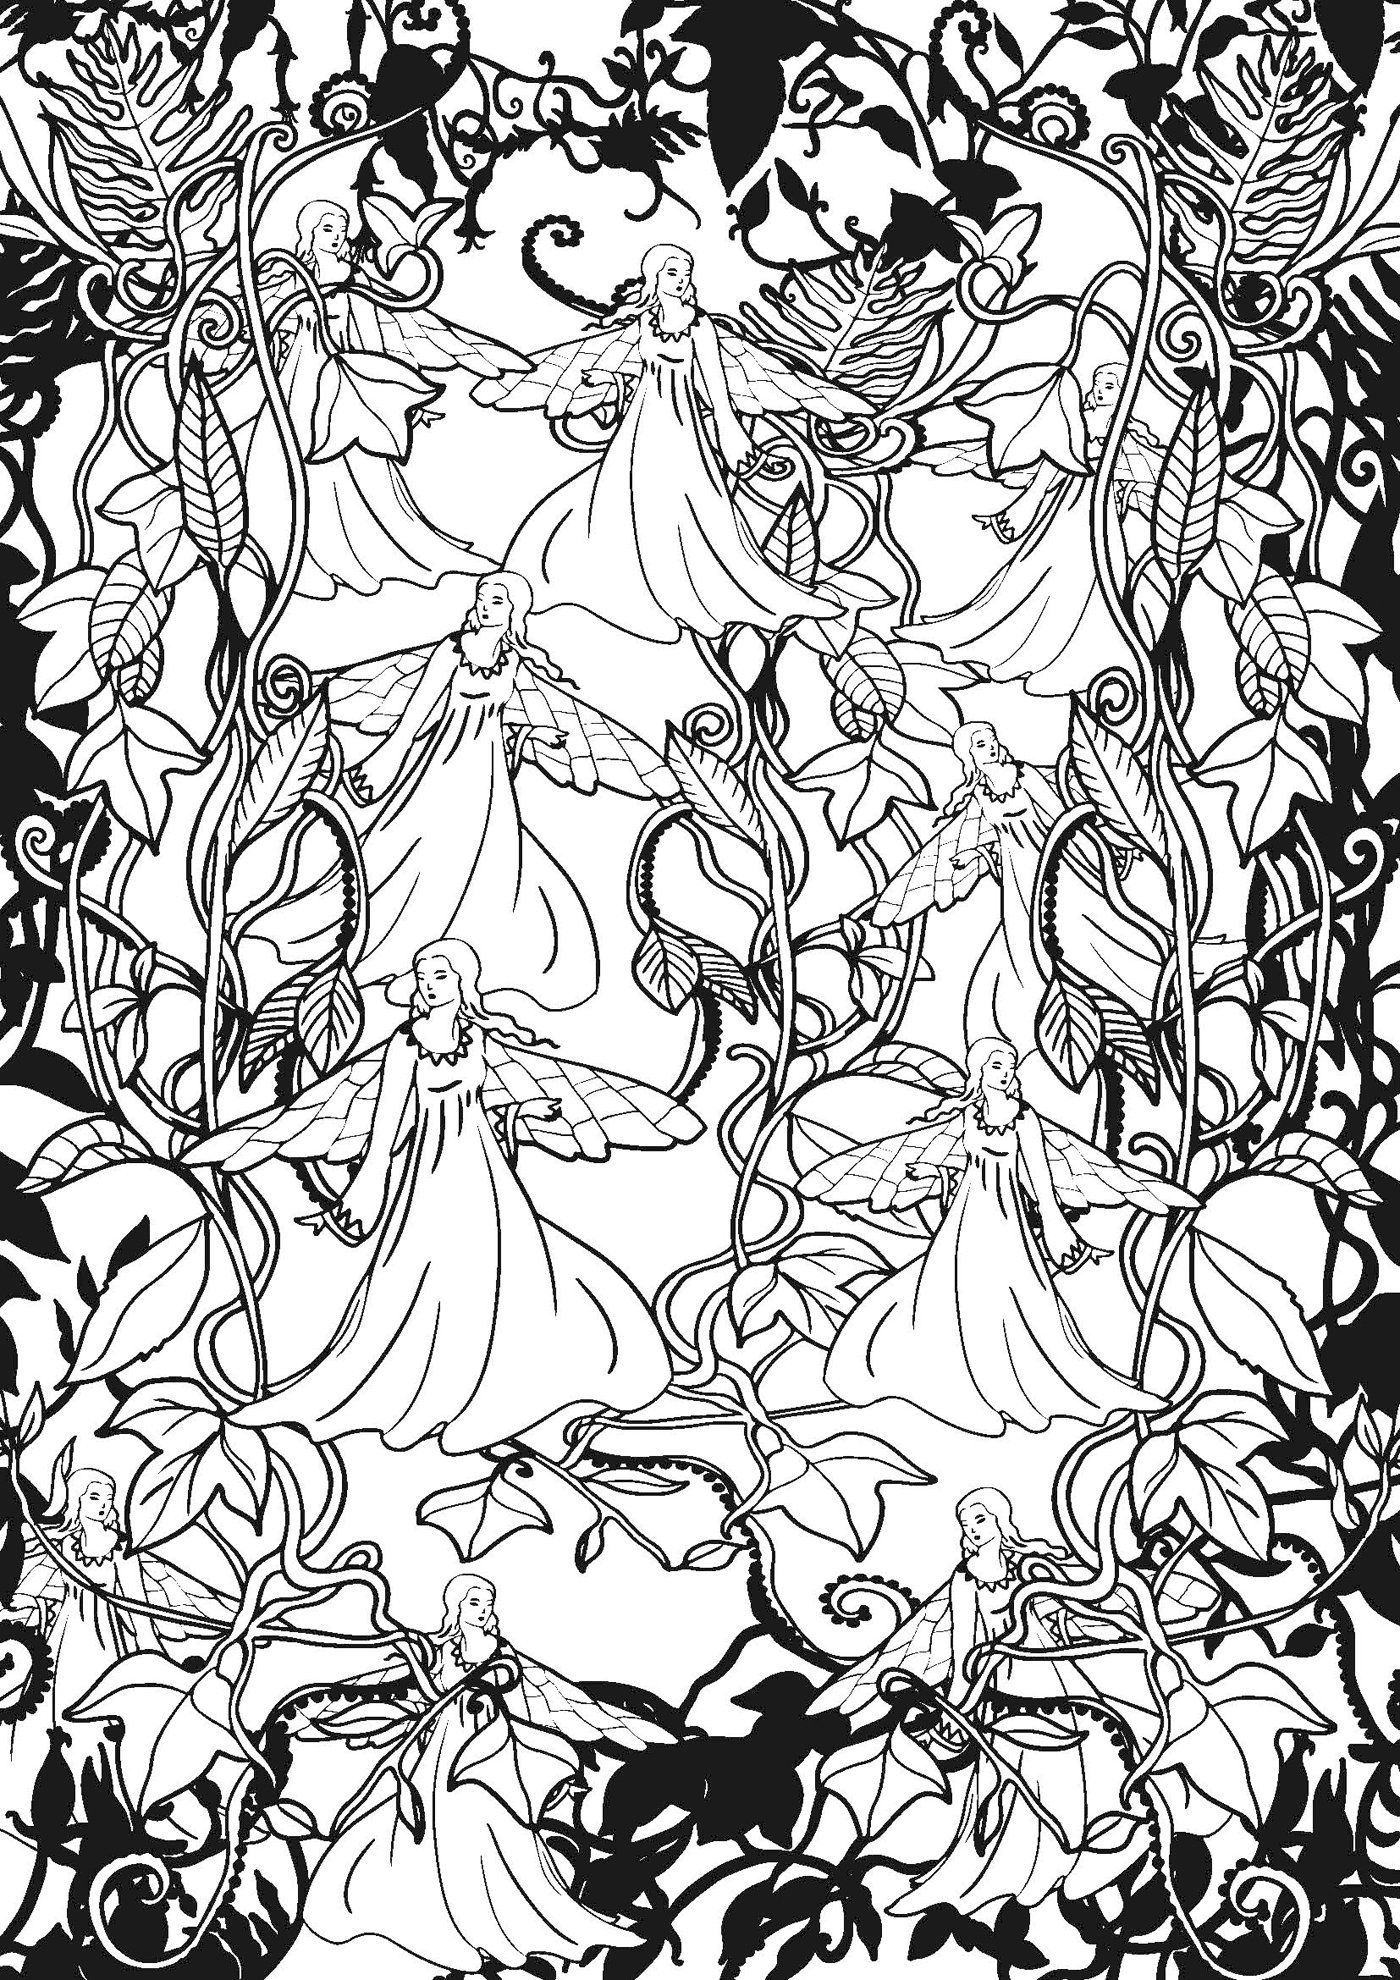 Art therapie forets feeriques 100 coloriages anti stress french edition marthe mulkey - Coloriage art therapie ...